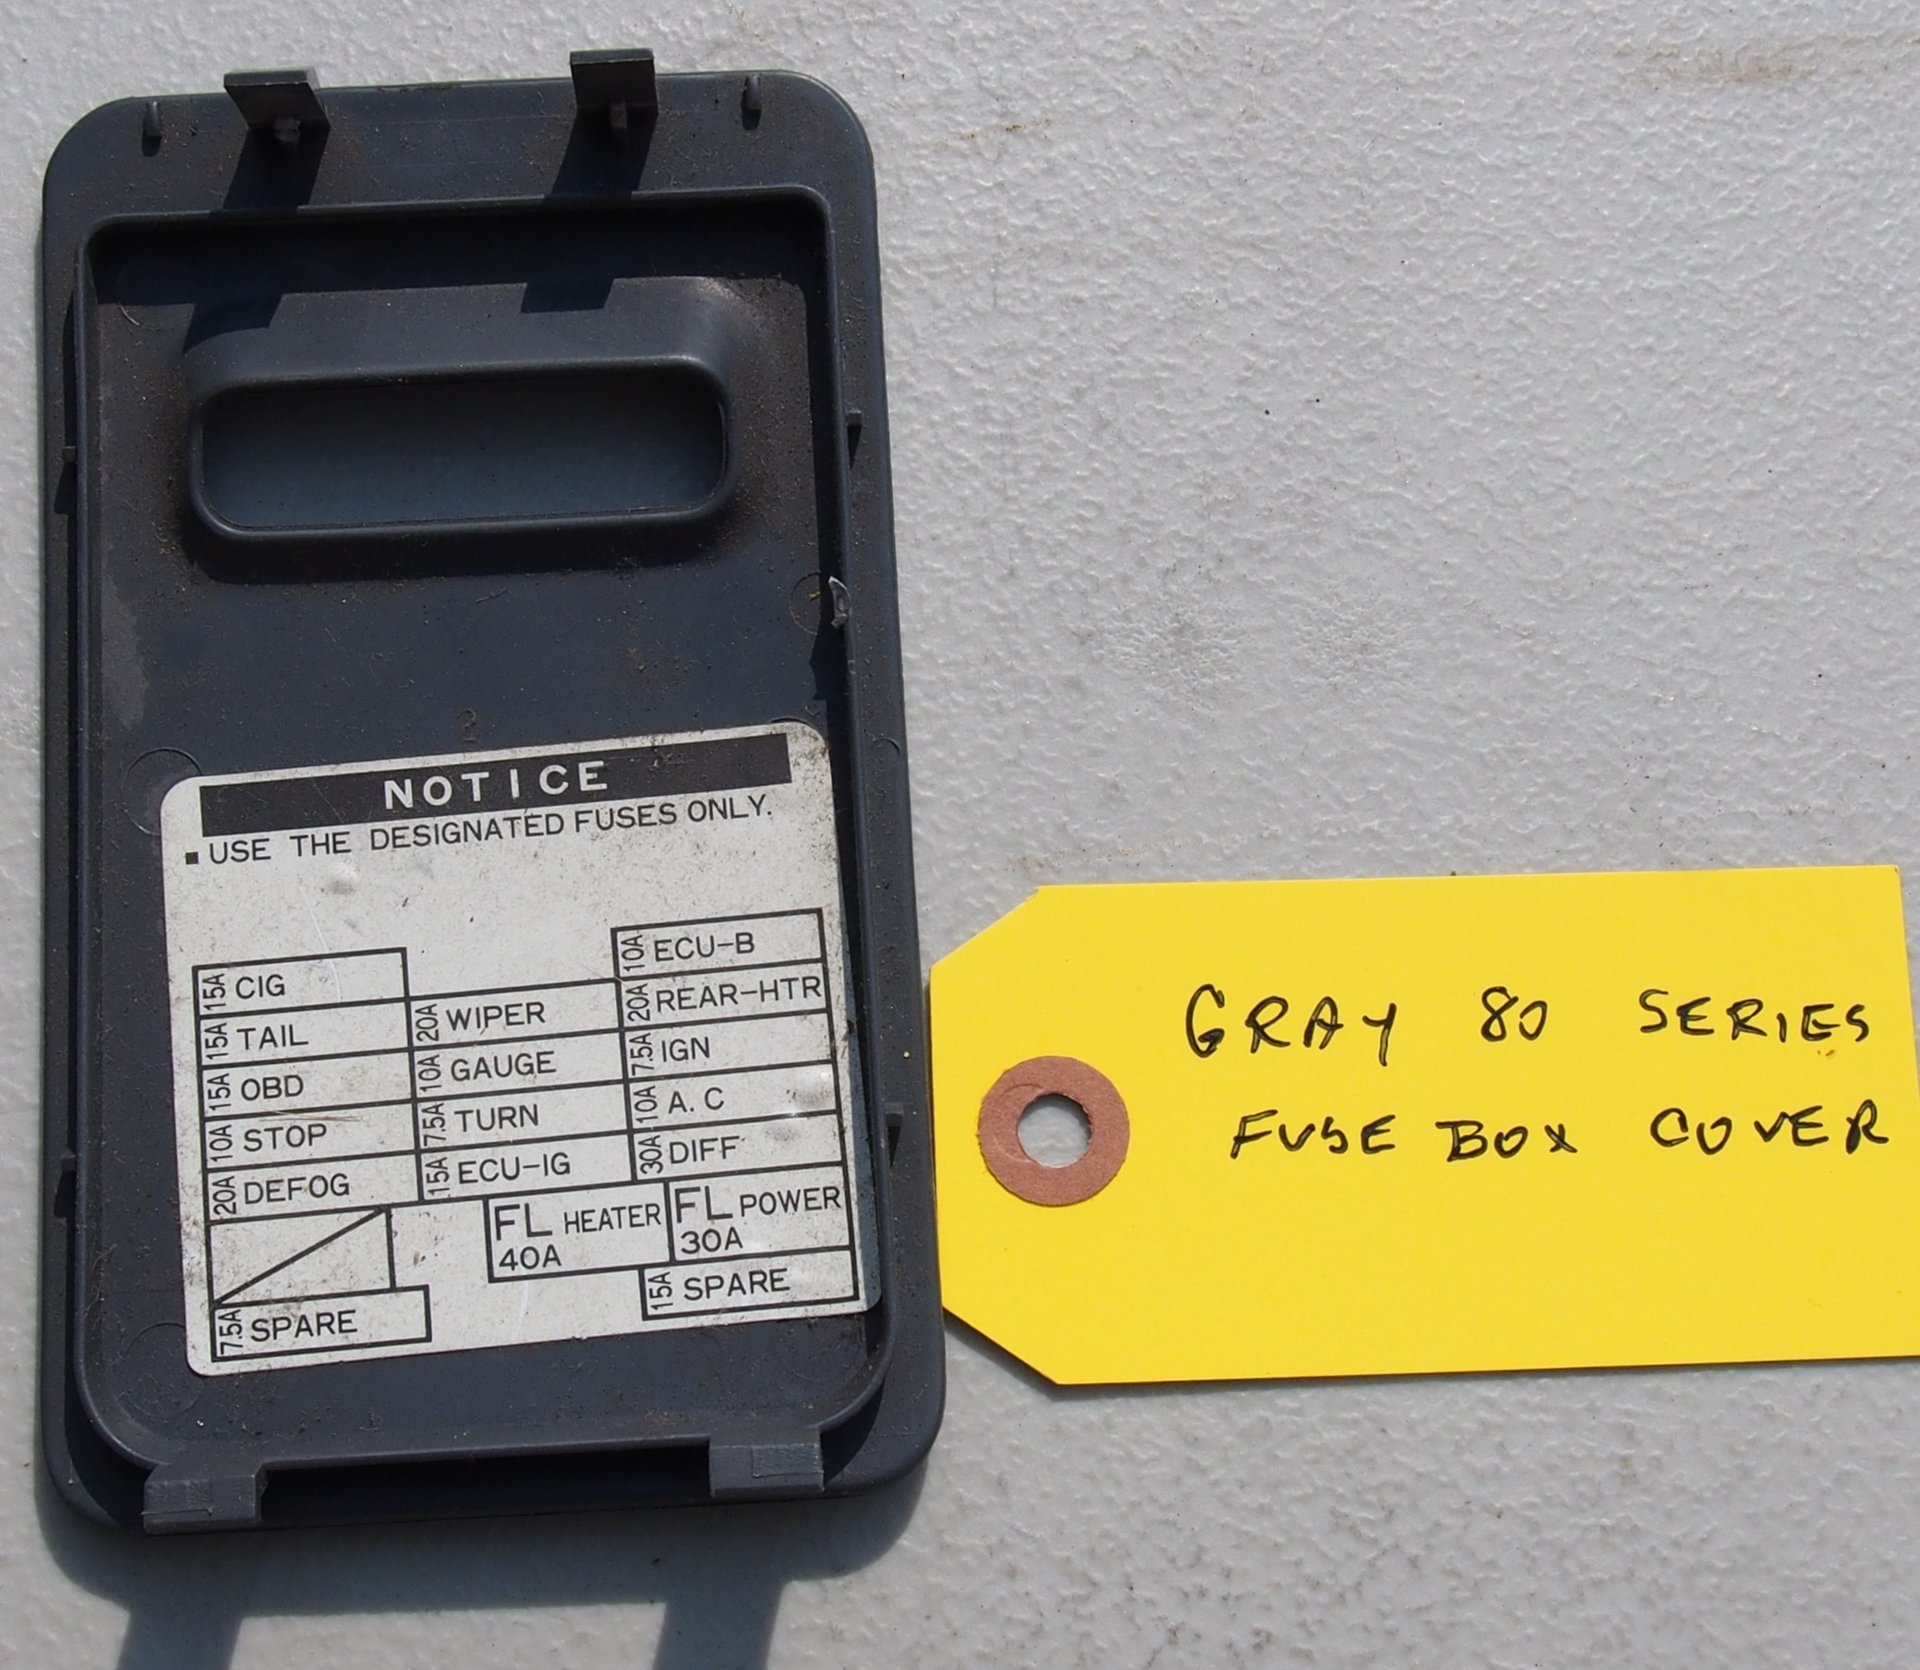 hight resolution of gray 80 series fuse box cover